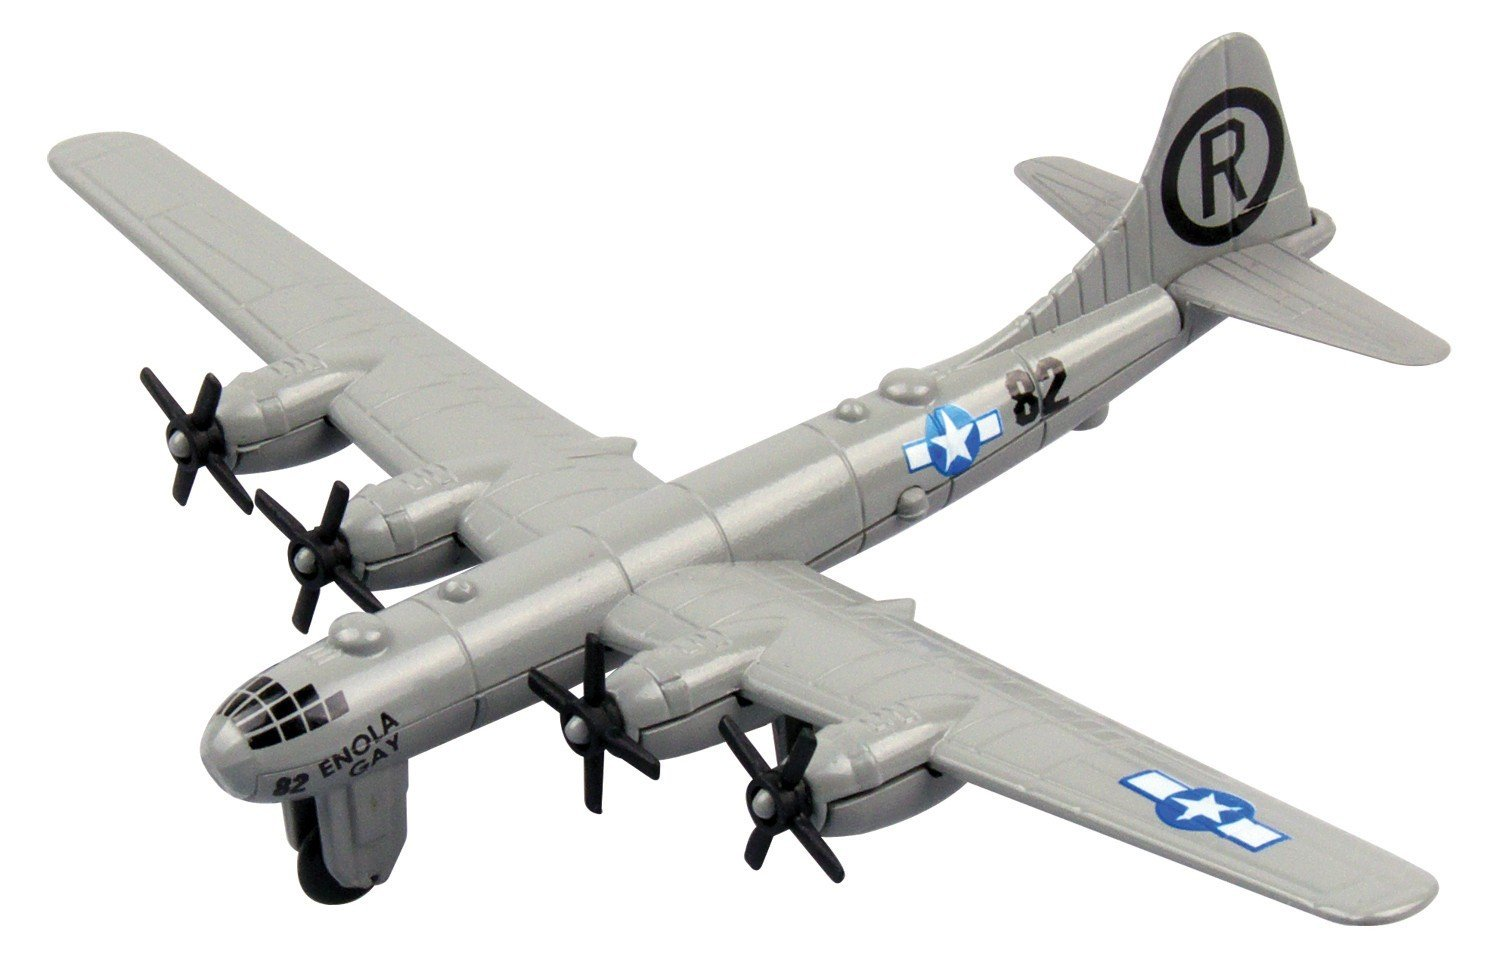 Richmond Toys 1:100 Motormax Sky Wings Boeing B-29 Superfortress Die-Cast Plane with Authentic Details